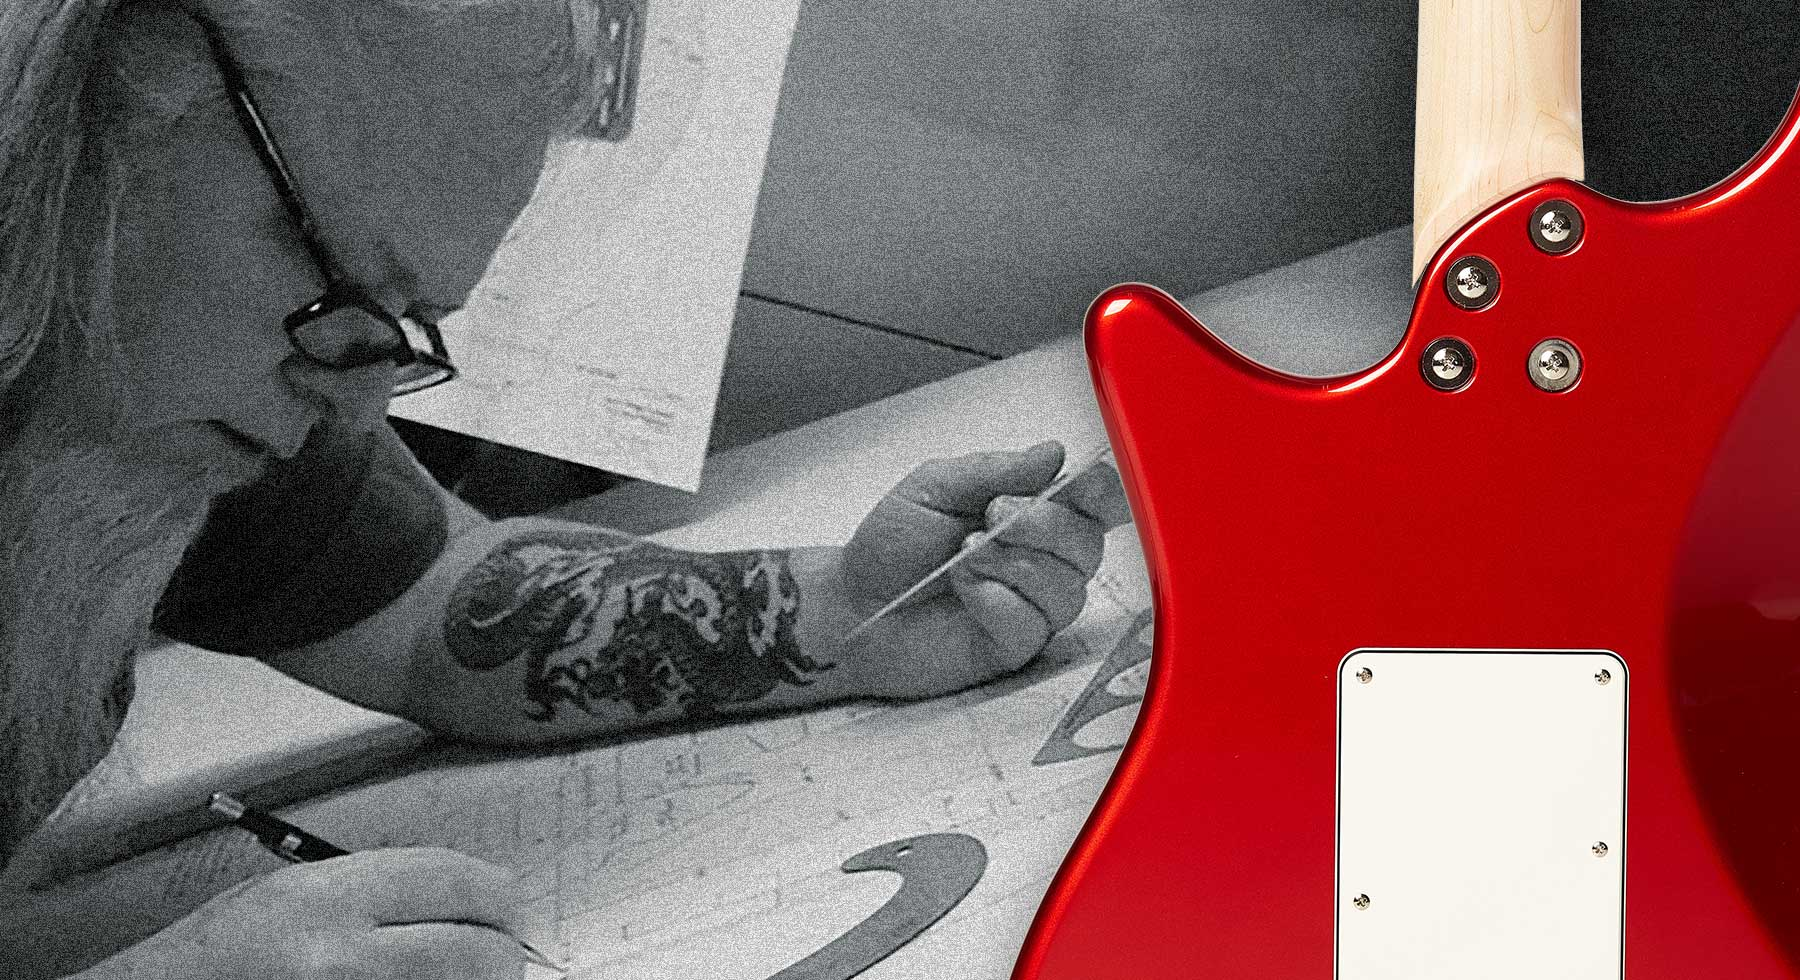 What makes your forever guitar? Explore the custom design genius of John Page